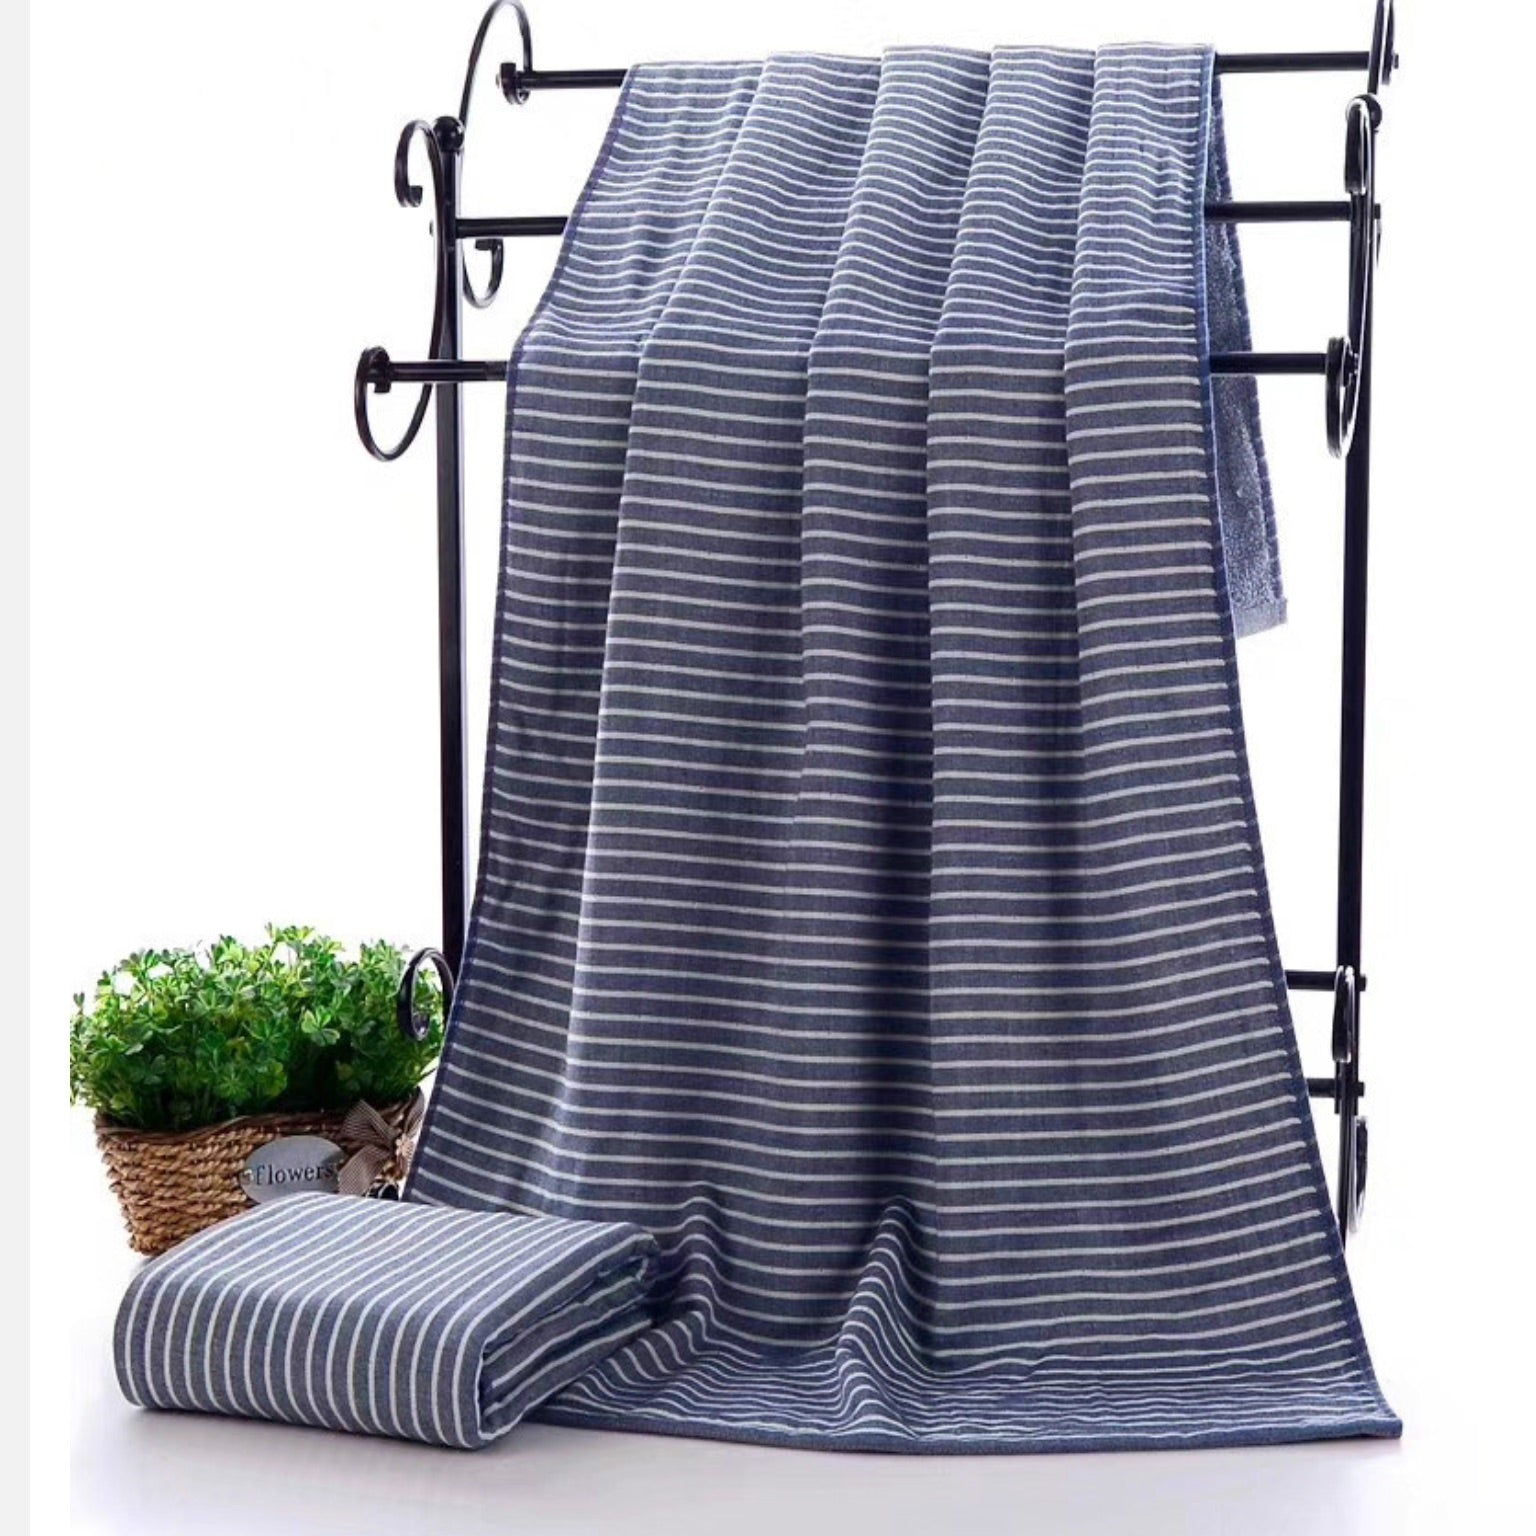 Trend Blue Cotton Bath Towel Japanese Striped Fabric Large Towel Japan Stripe Bathroom Linen Bath Towels